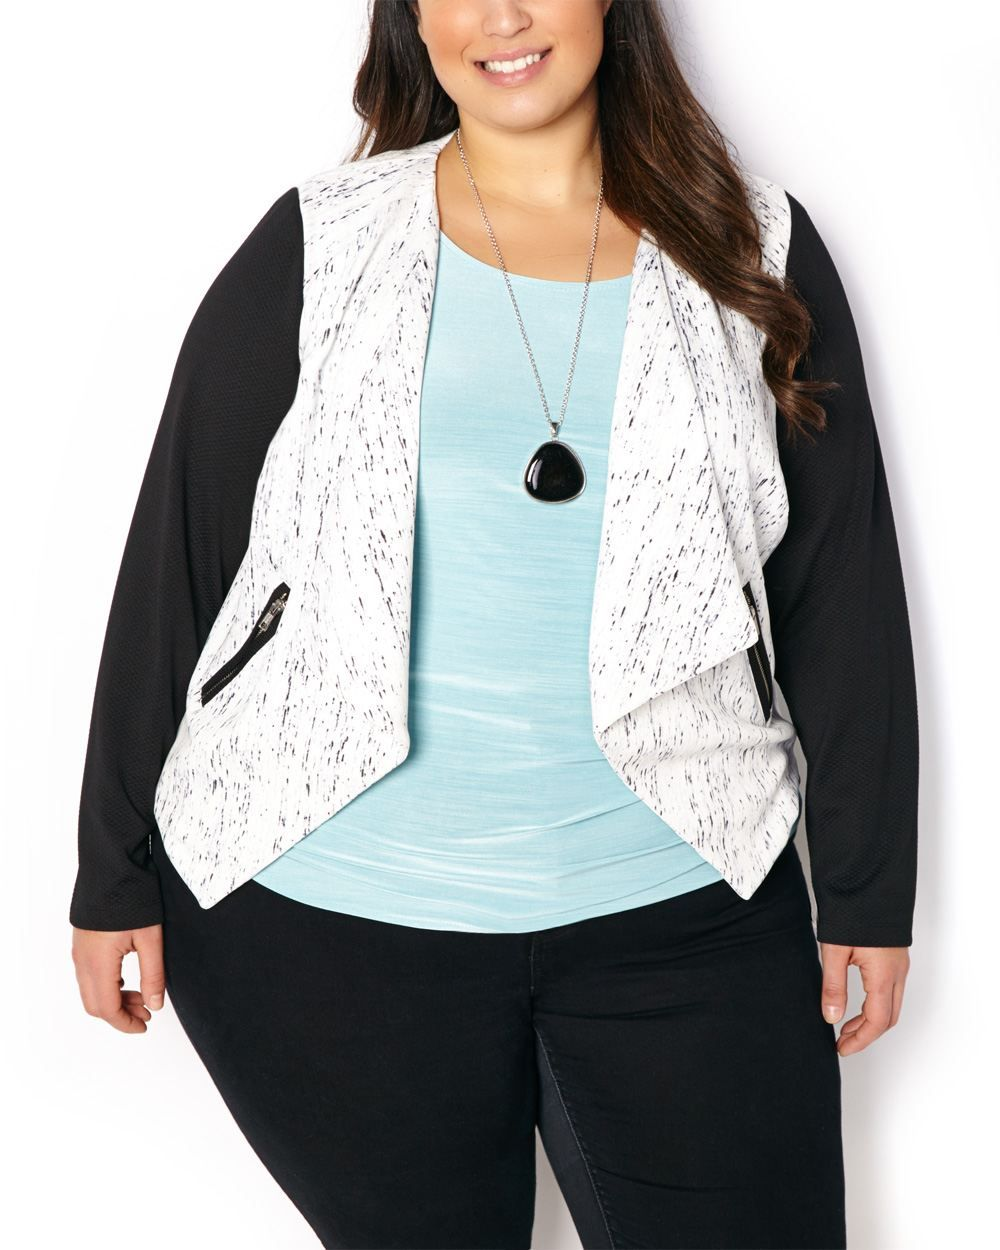 """Layer your looks in style thanks to this trendy plus-size jacket! It features a stylish two-toned knit fabric with contrasting long sleeves, an open front design and practical zipped pockets at front. Adds an edge to any outfit! Length: 26"""""""